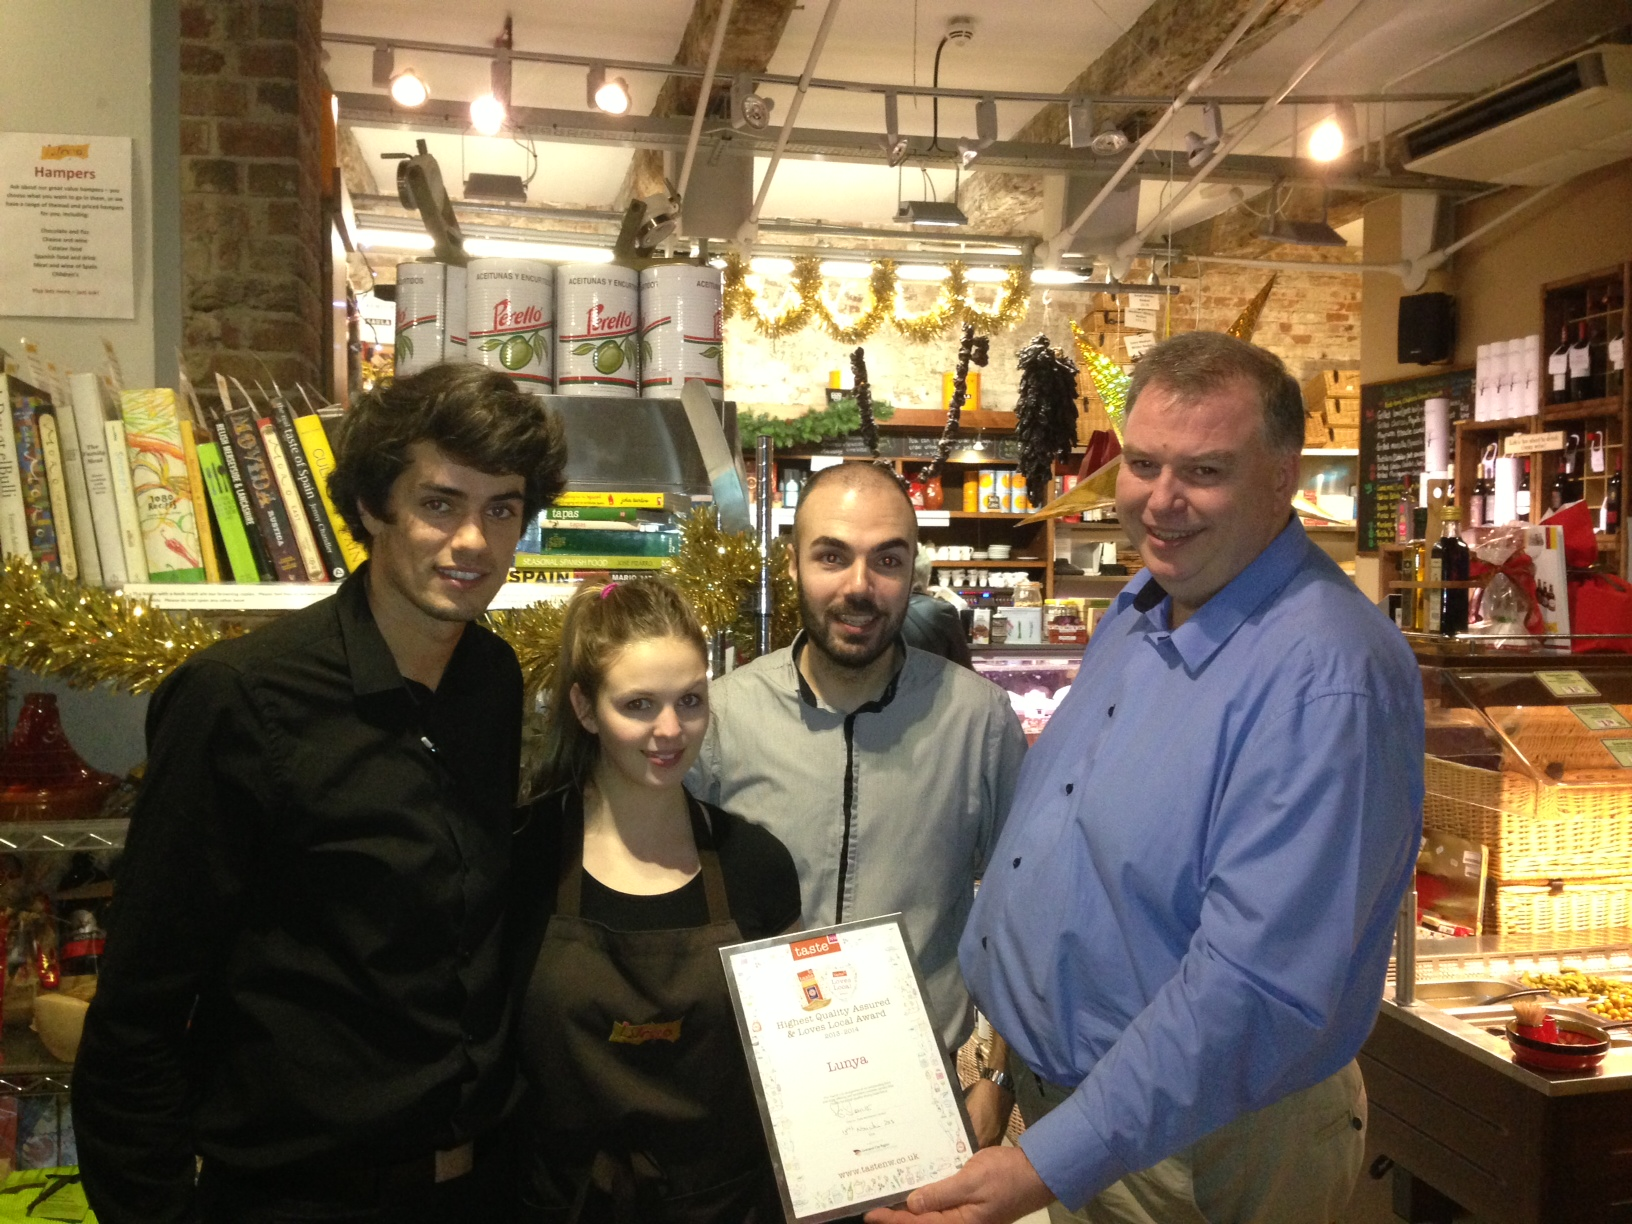 Lunya owner Peter Kinsella and his award winning team